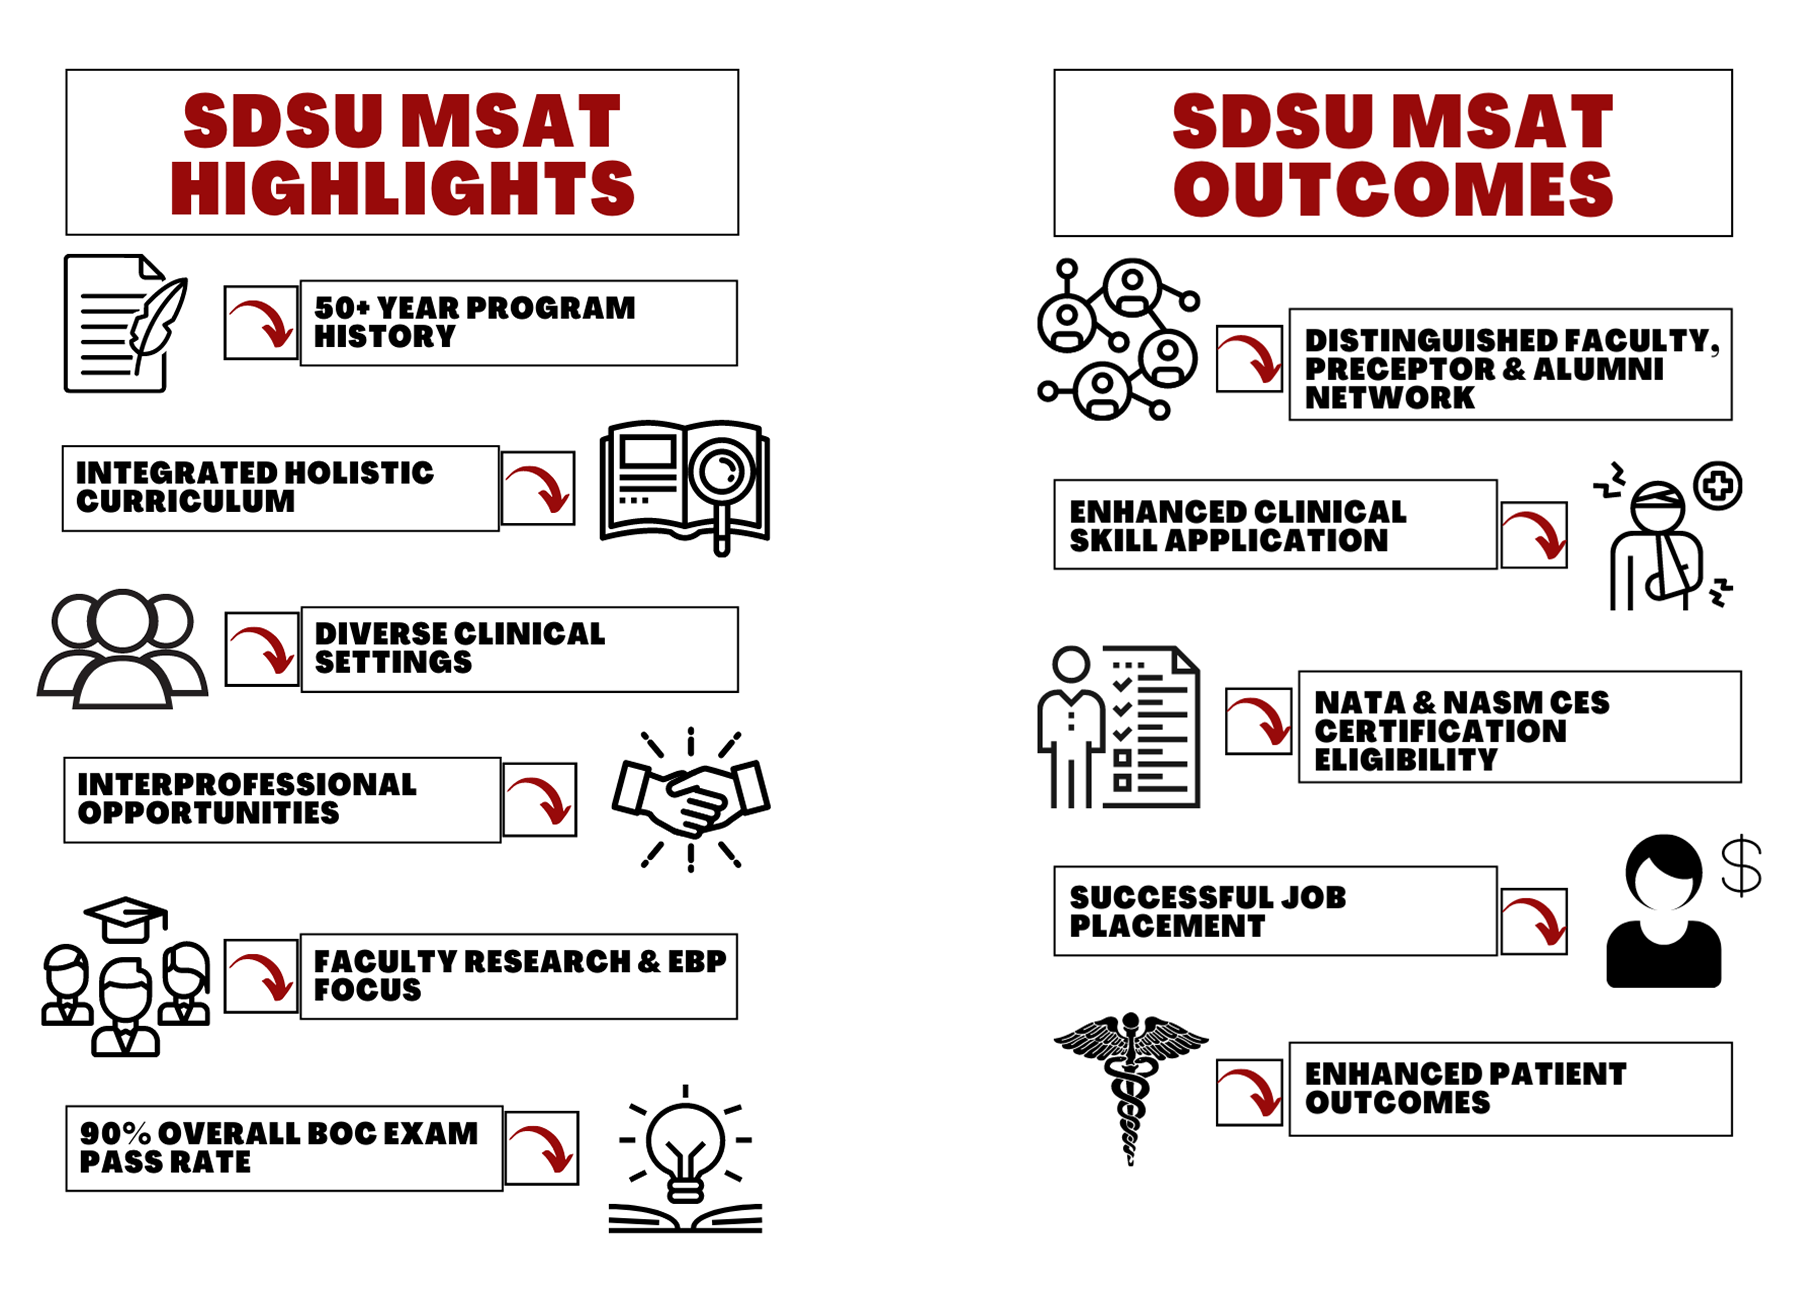 SDSU MSAT Highlights: 50+ year program history, integrated holistic curriculum, diverse clinical settings, interprofessional opportunities, faculty research & EBP focus, 90% overall BOC exam pass rate. SDSU MSAT Outcomes Distinguished Faculty, preceptor & alumni network, enhanced clinical skill application, nasa & nasm ces certification eligibility, successful job placement, and enhanced patient outcomes